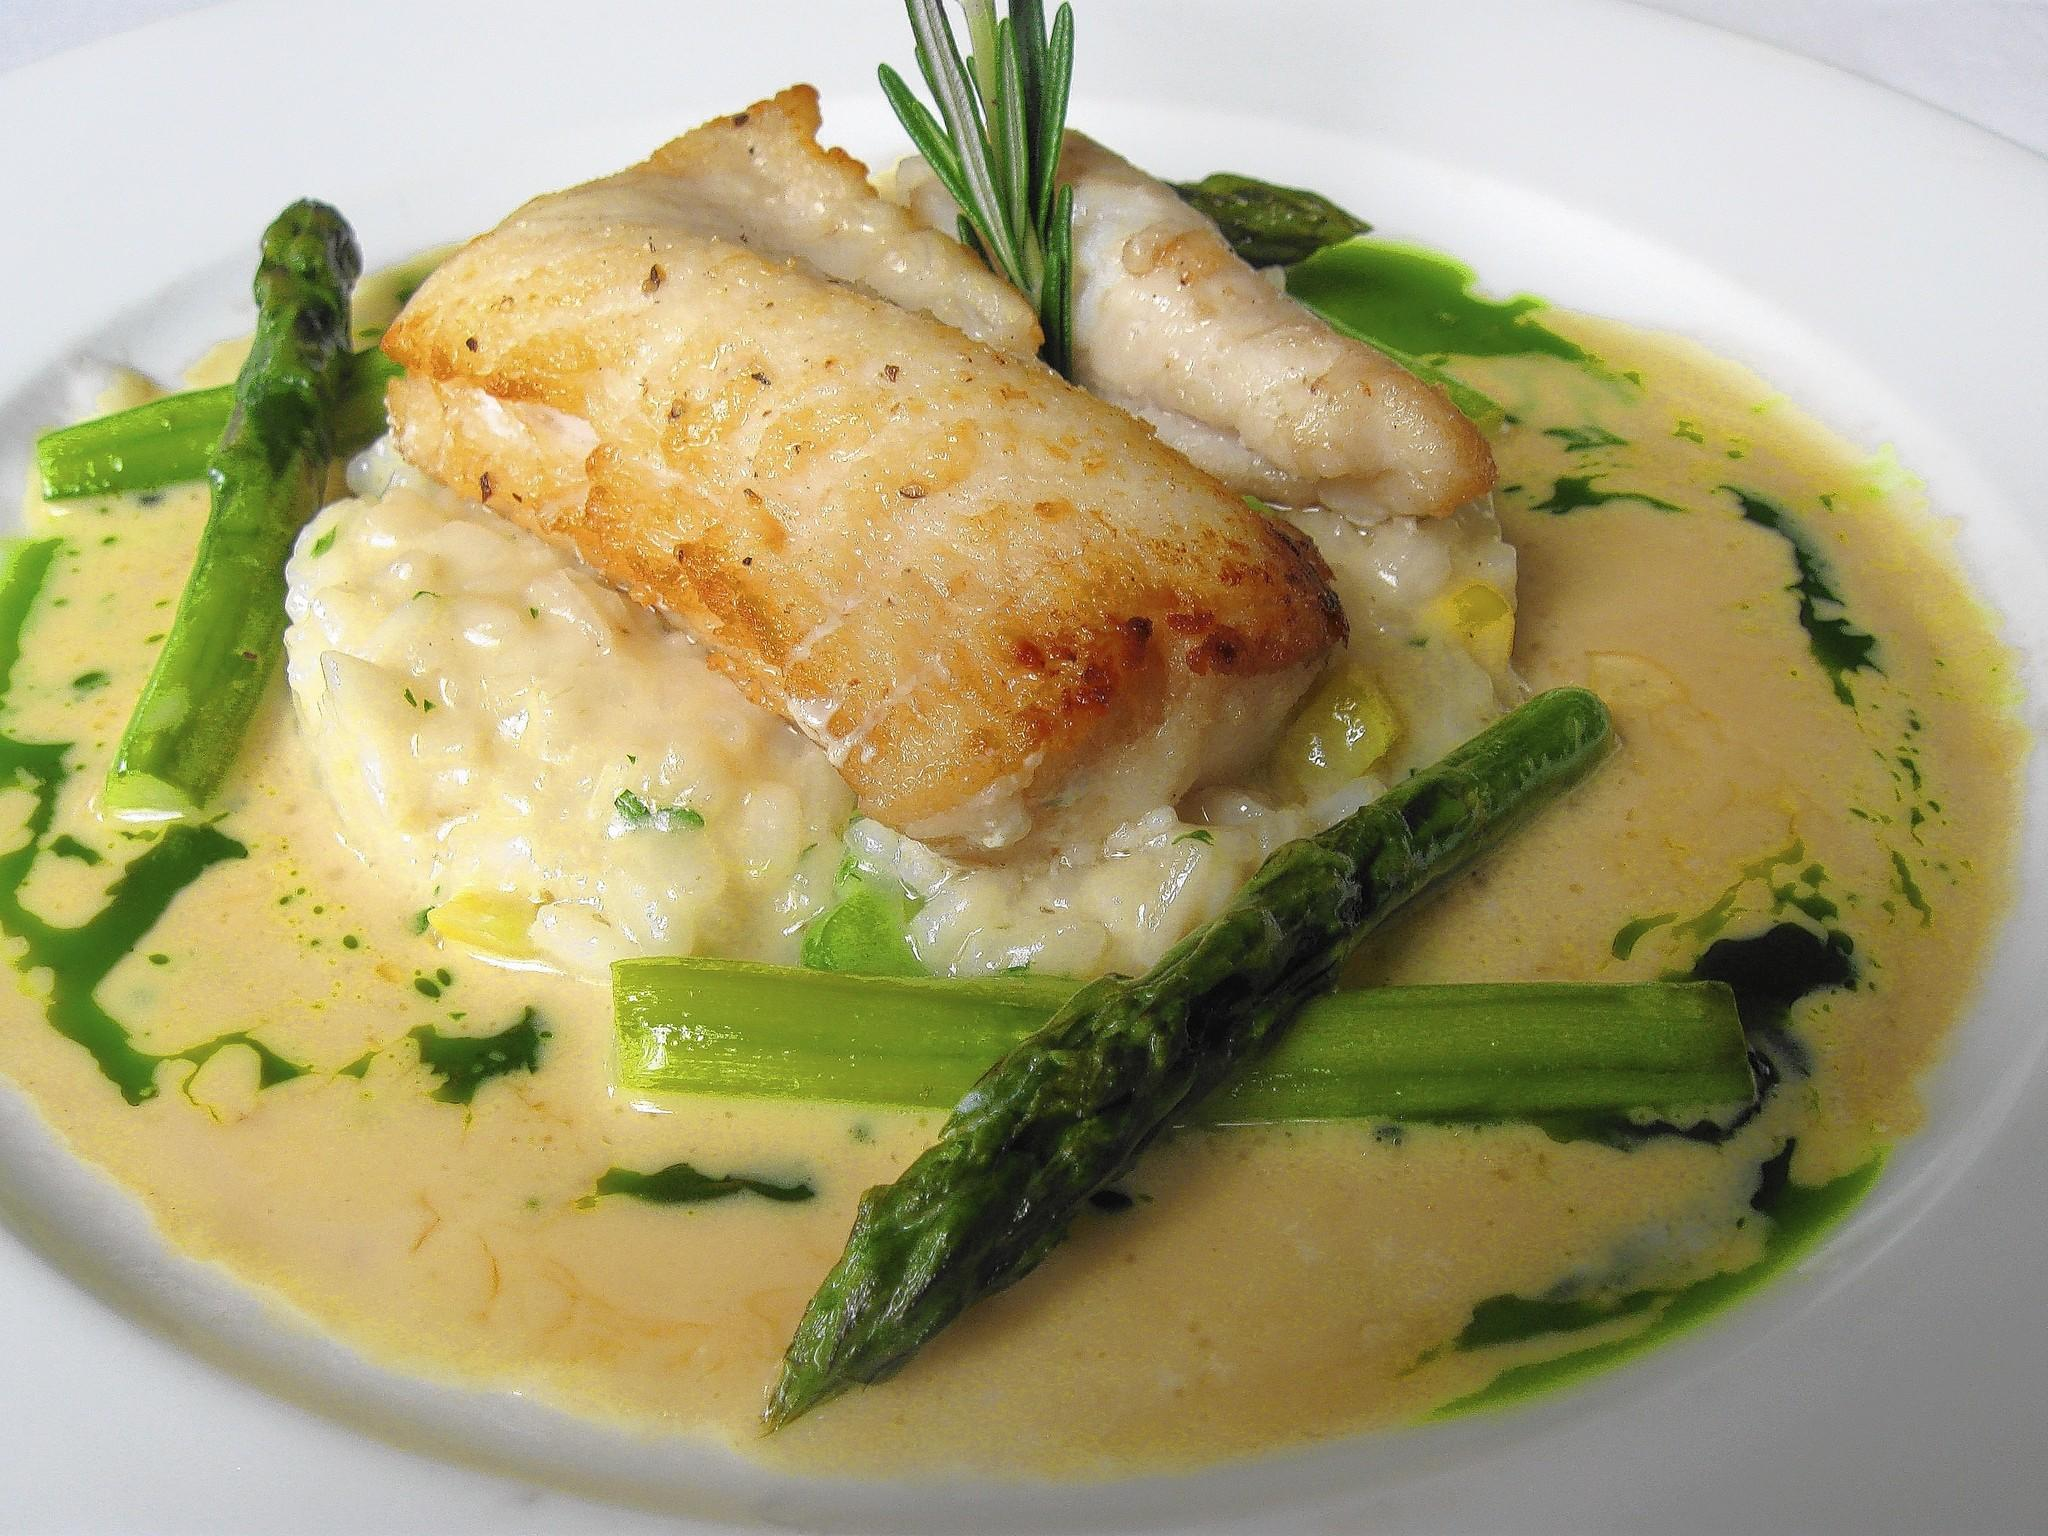 Wolfish was sautéed in butter and served on risotto, flecked with yellow zucchini and peas.